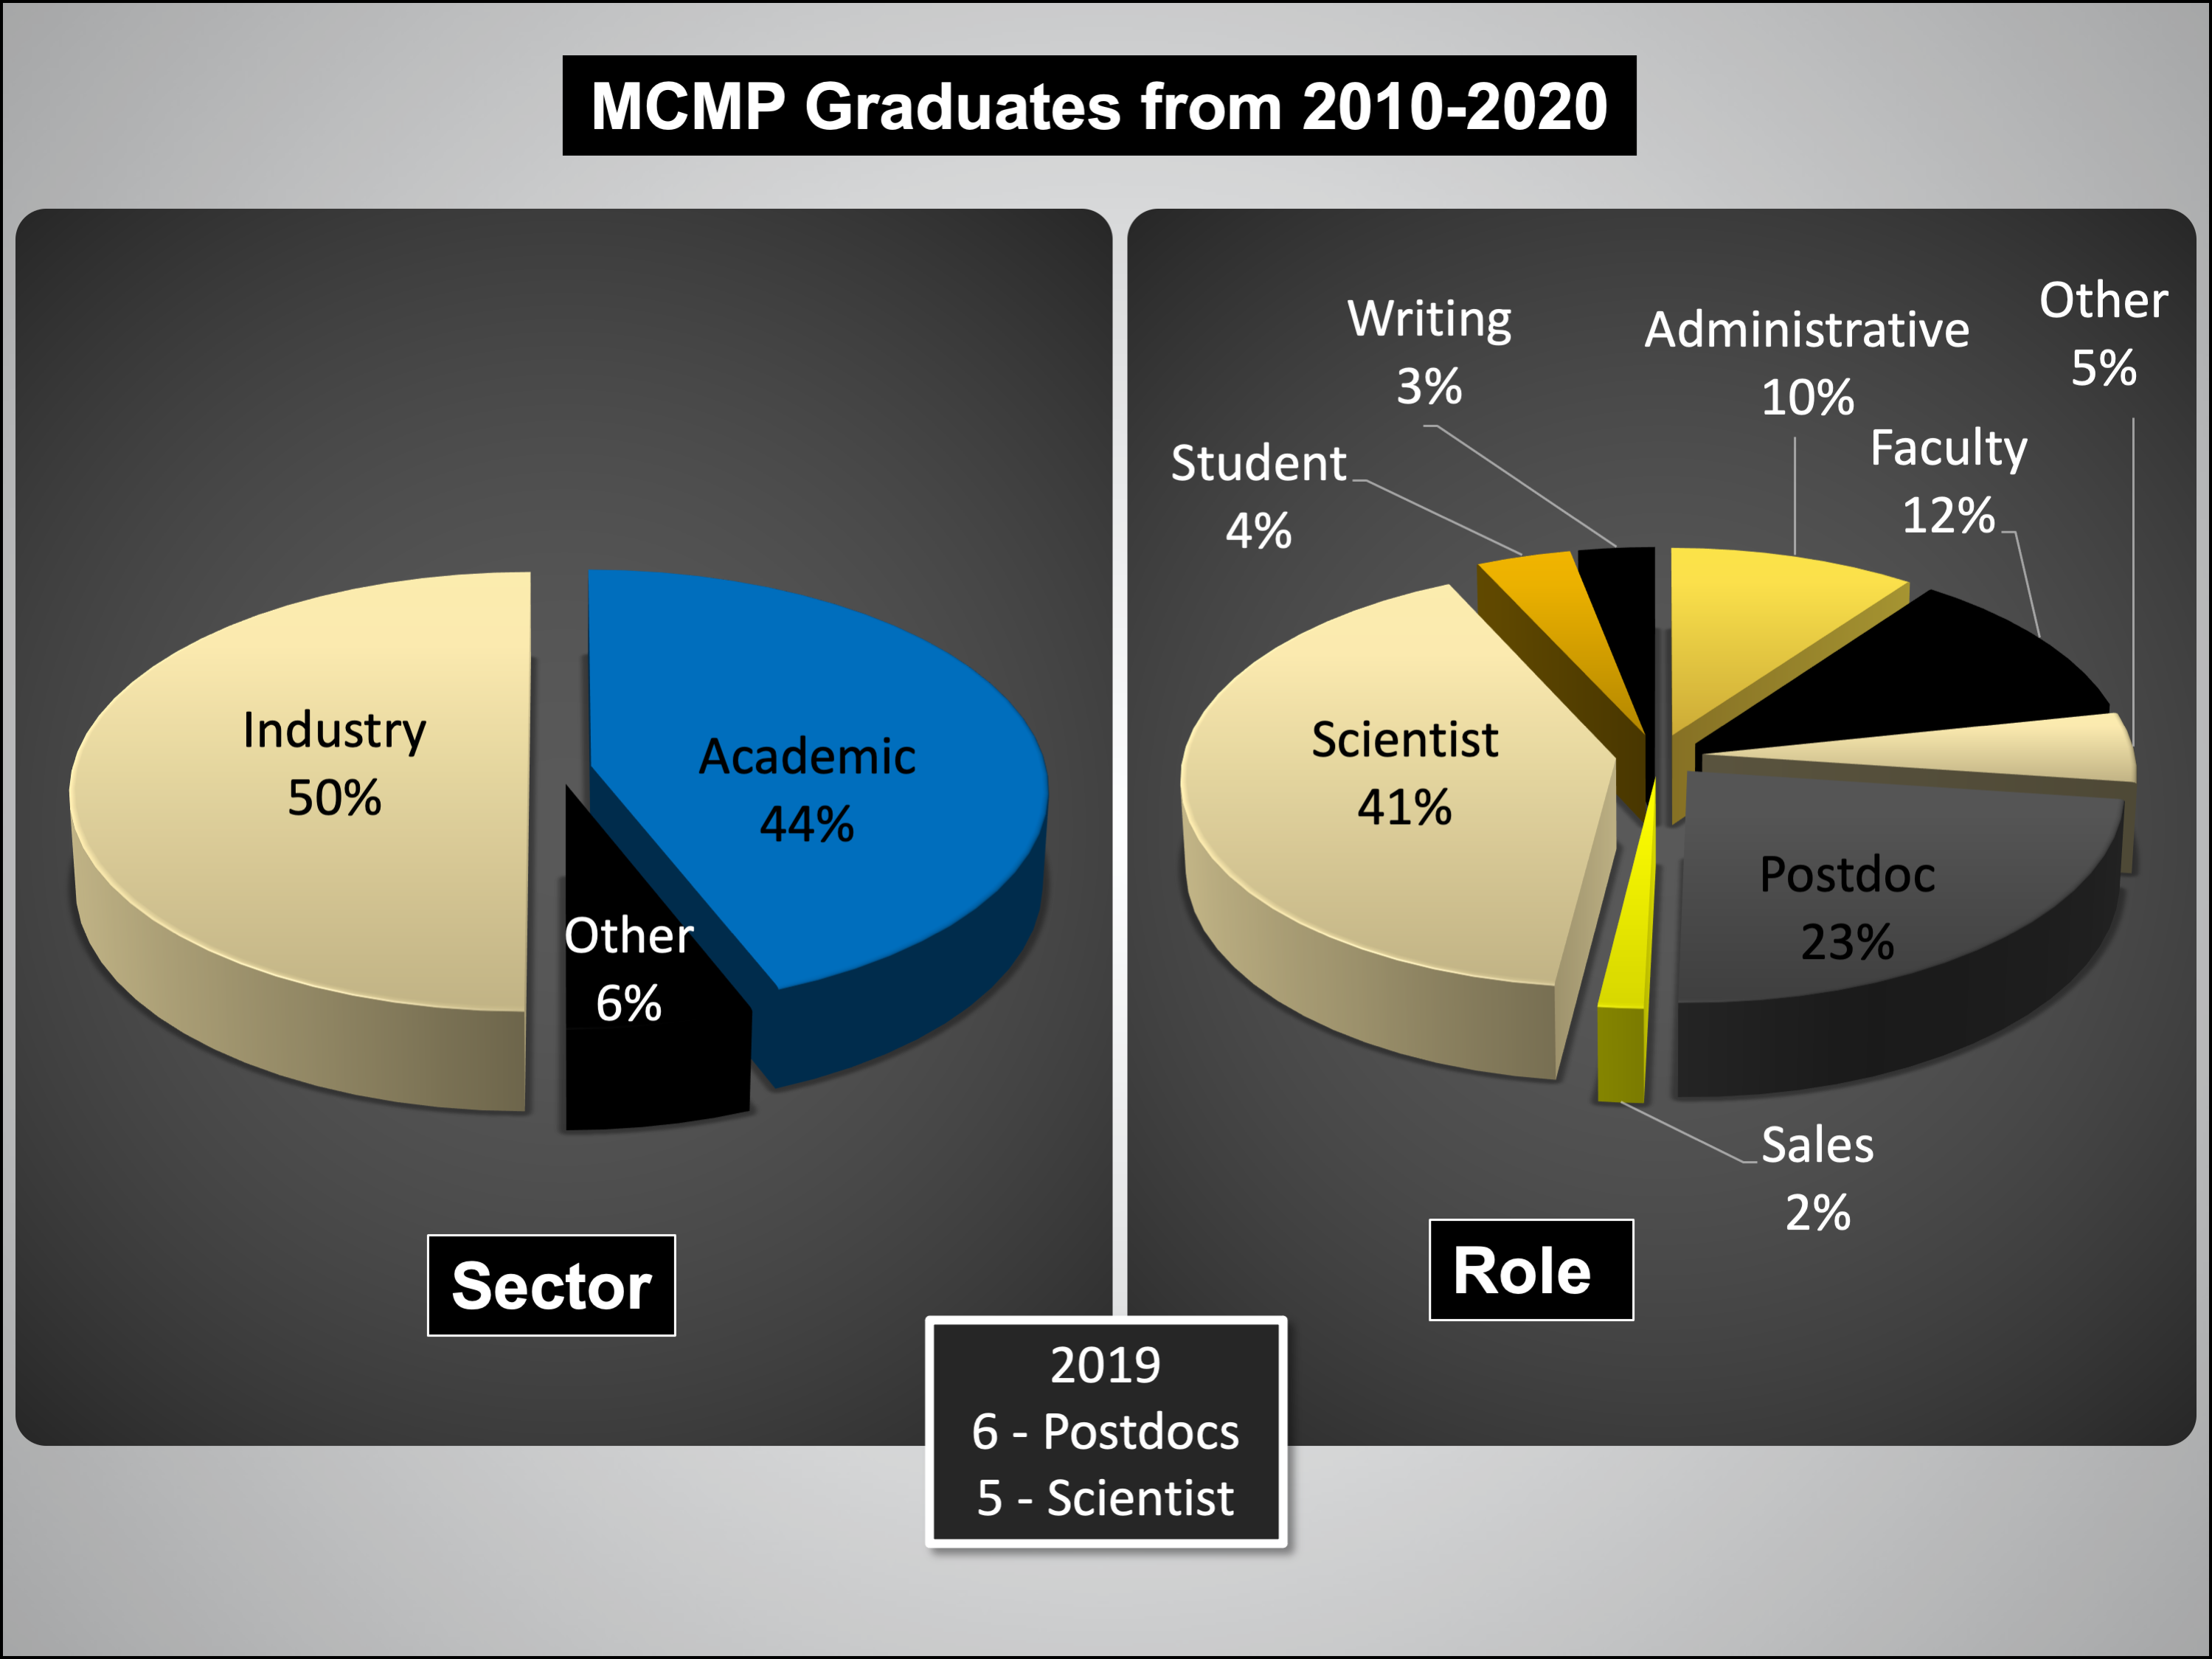 Graph of MCMP graduate careers from 2010-2020